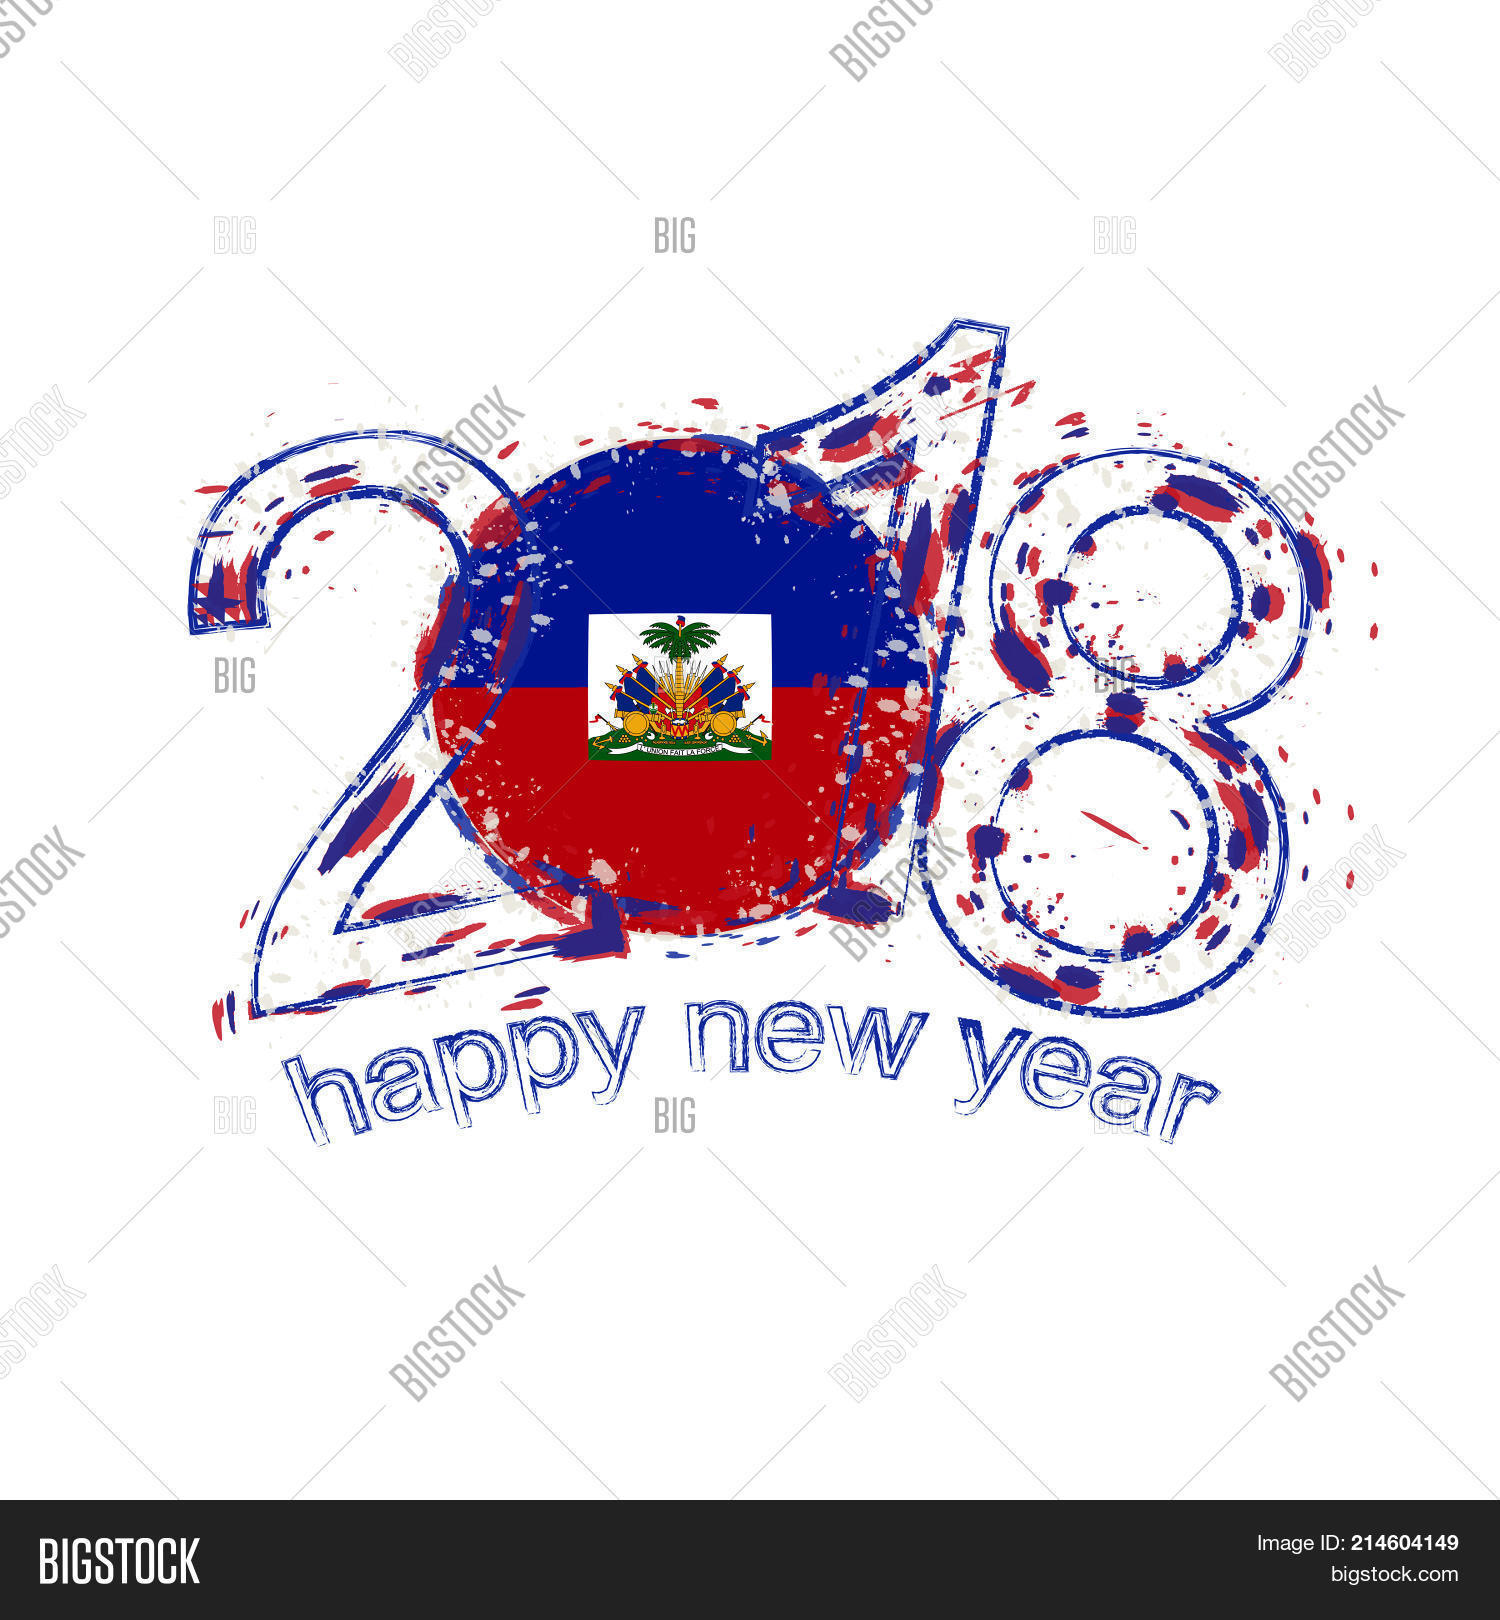 2018 Happy New Year Haiti Grunge Vector & Photo | Bigstock